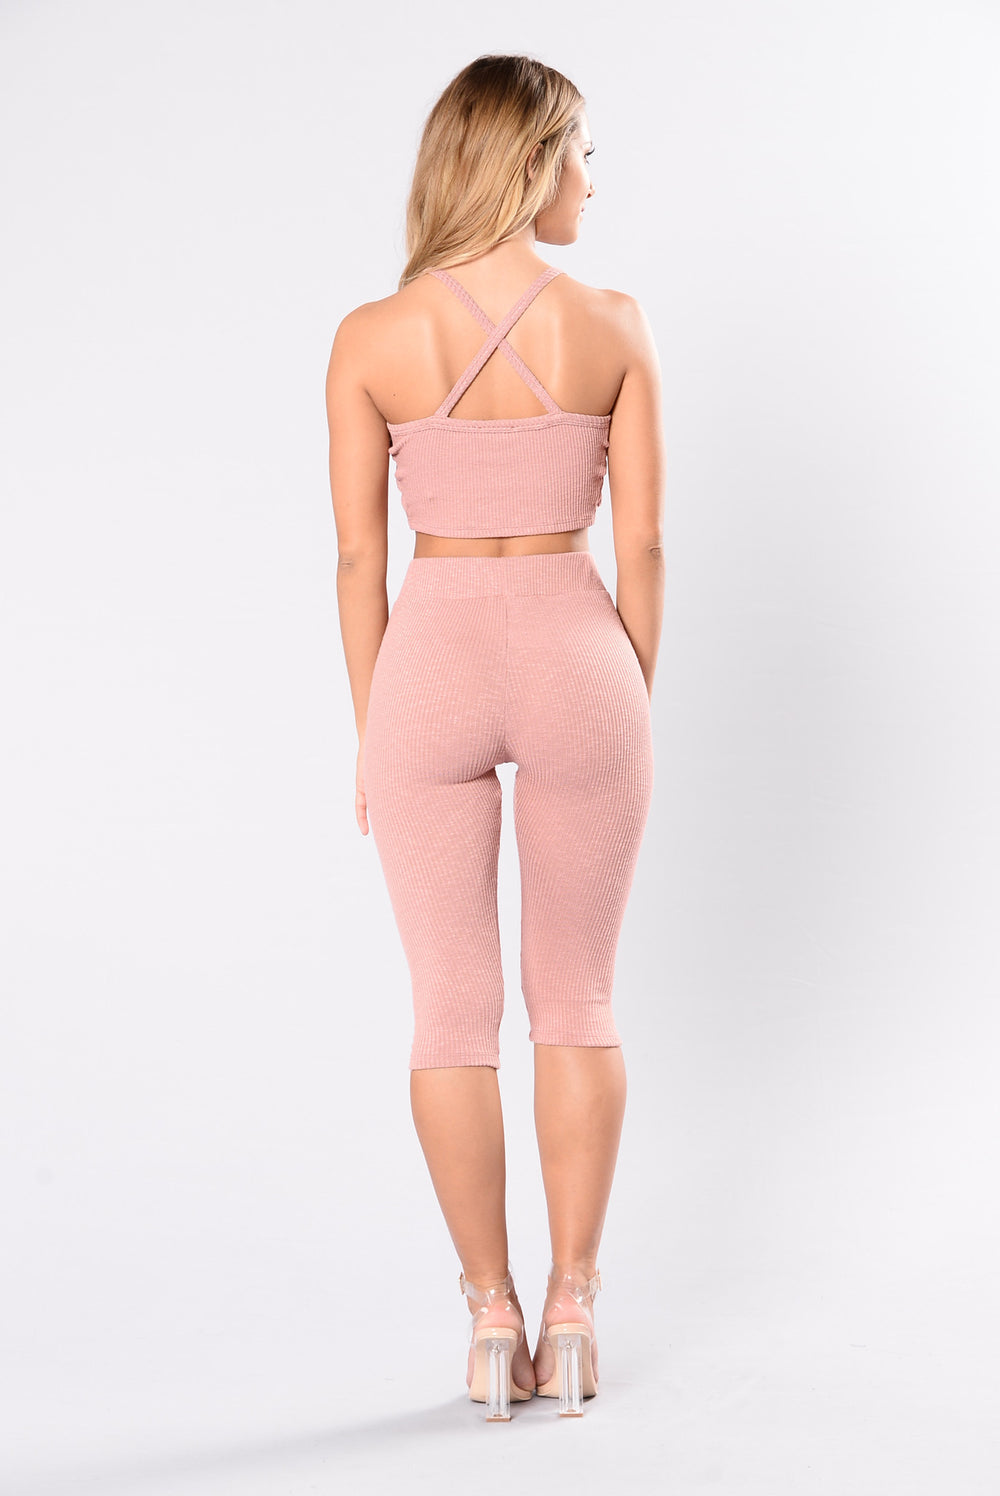 Cute yoga pants shorts in rose pink color